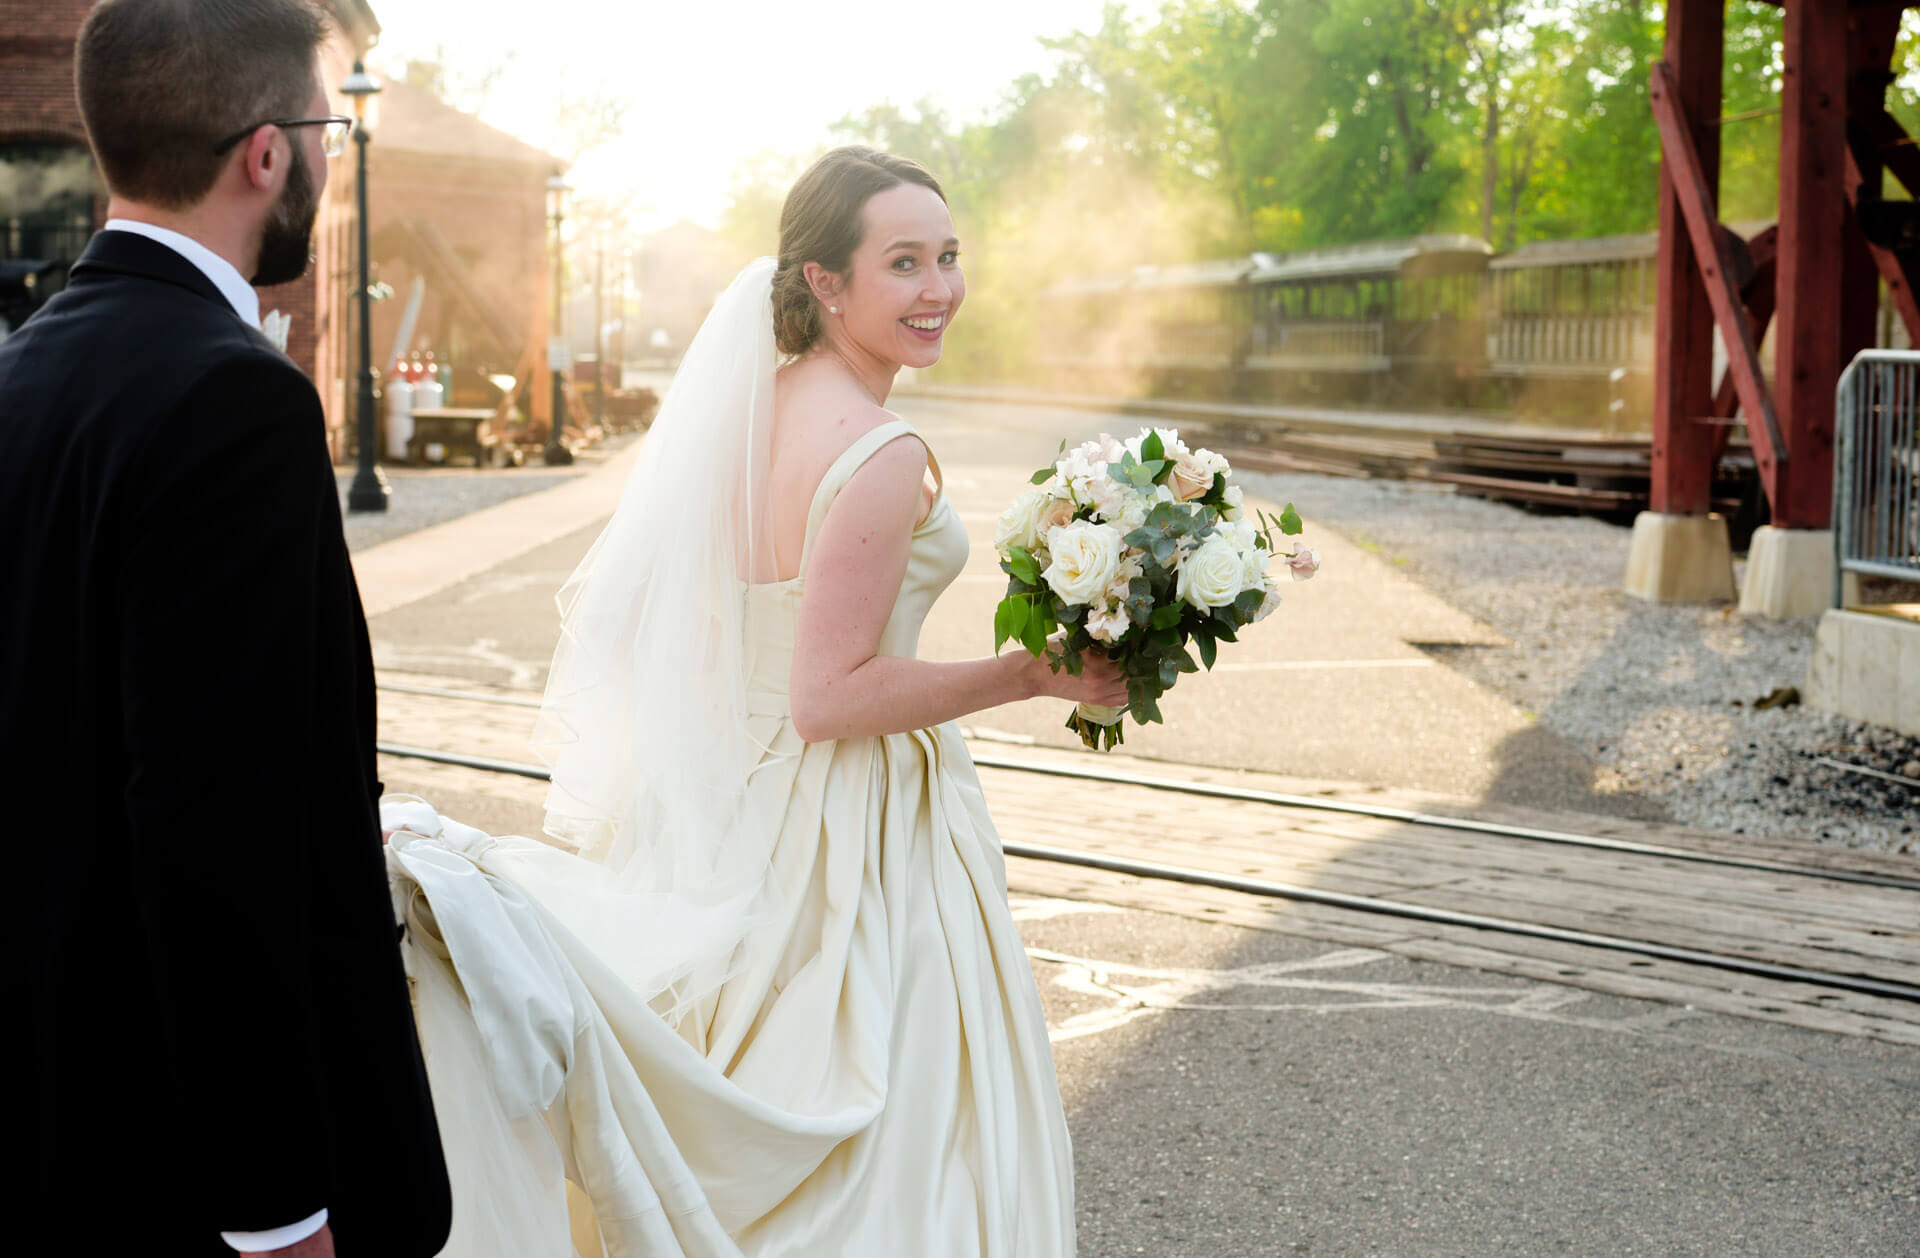 Epic Wedding portrait showing the bride walking through the Greenfield Villages with her husband after their wedding in Dearborn, Michigan.